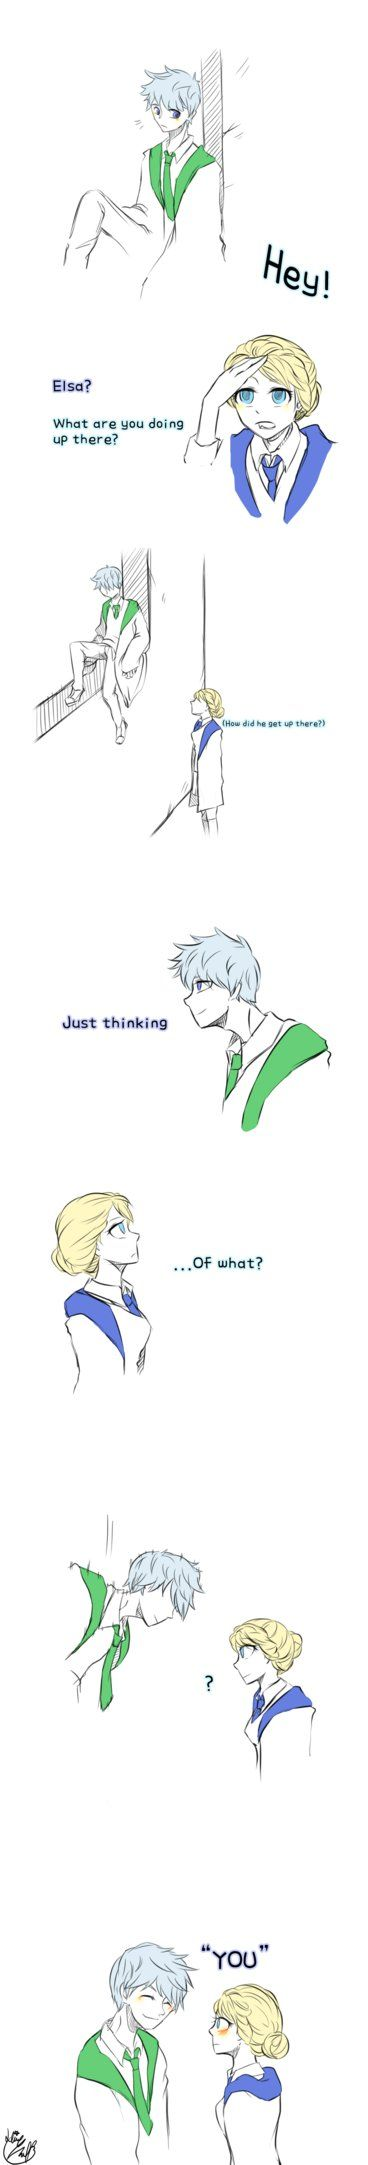 Thinking by Lime-Hael on deviantART